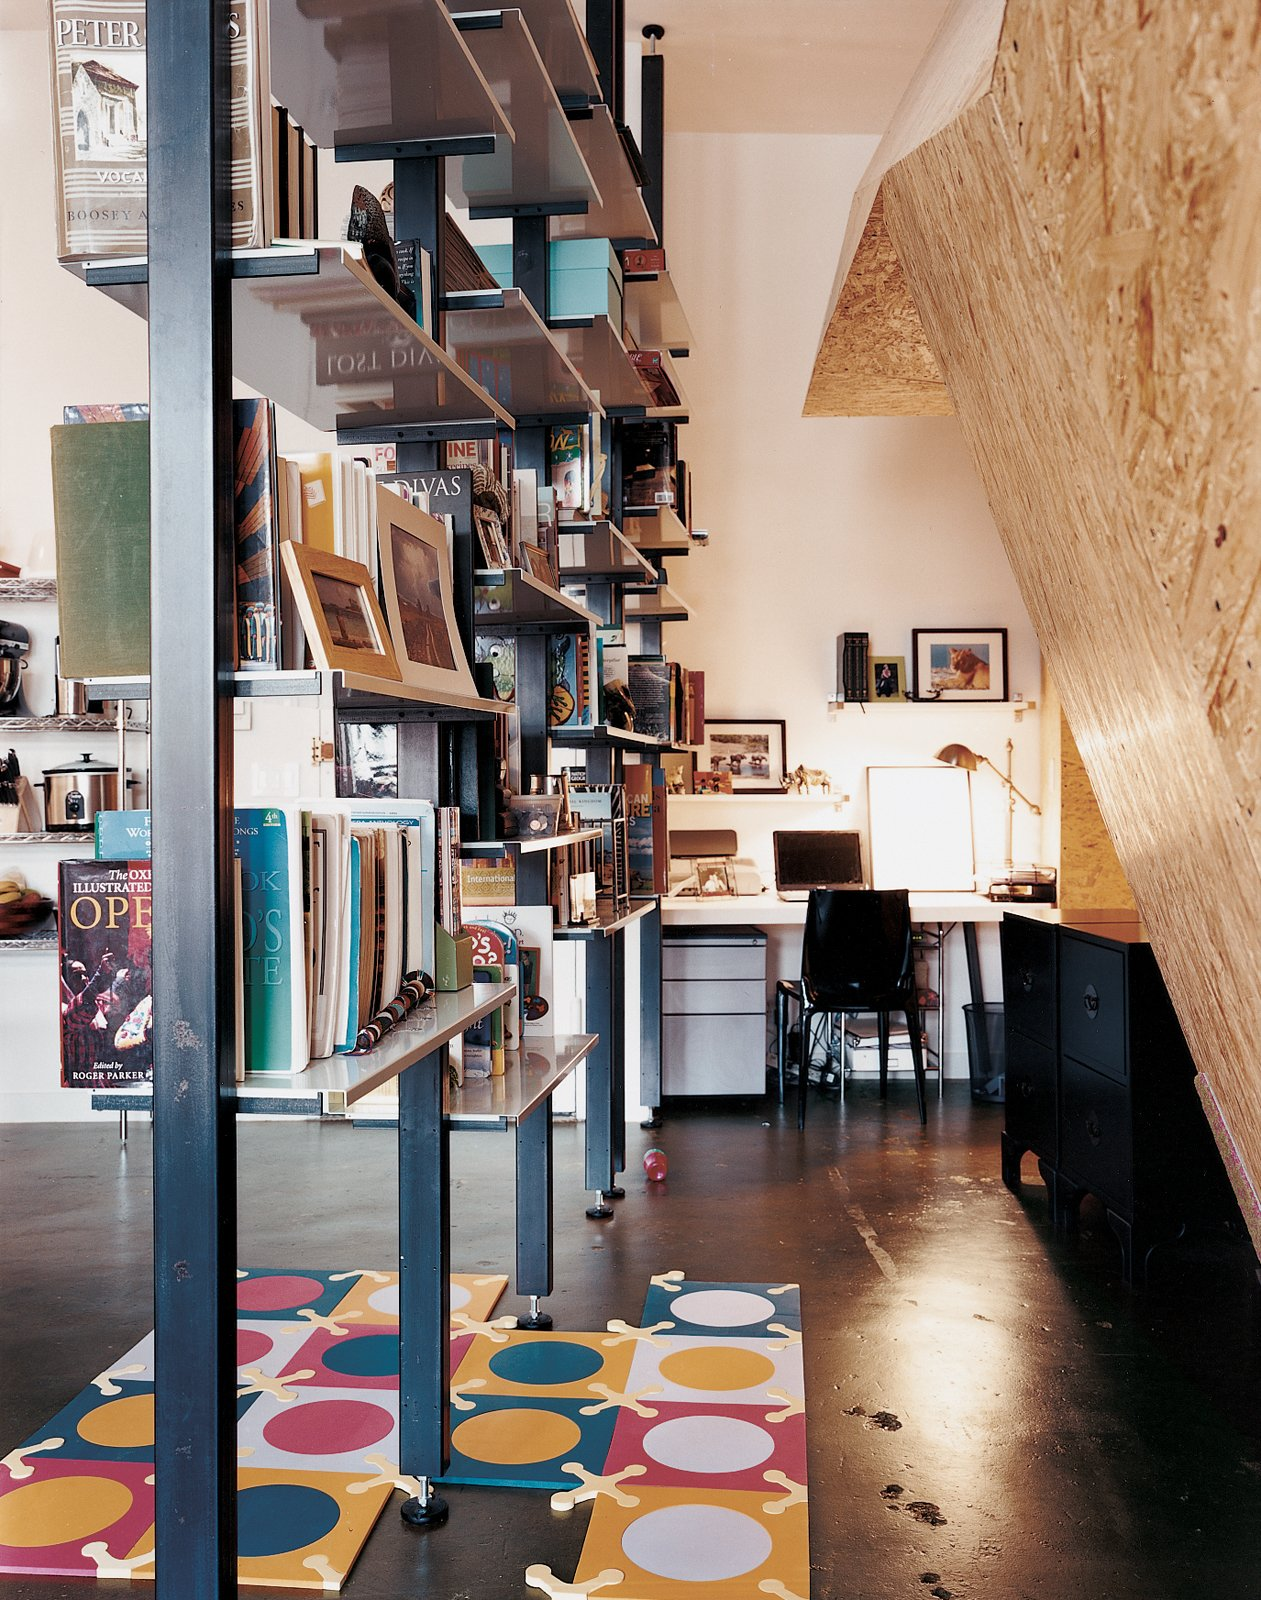 Custom-fabricated modular bookshelves create a corridor leading to the home office.  Storage by Dwell from Hive Minded